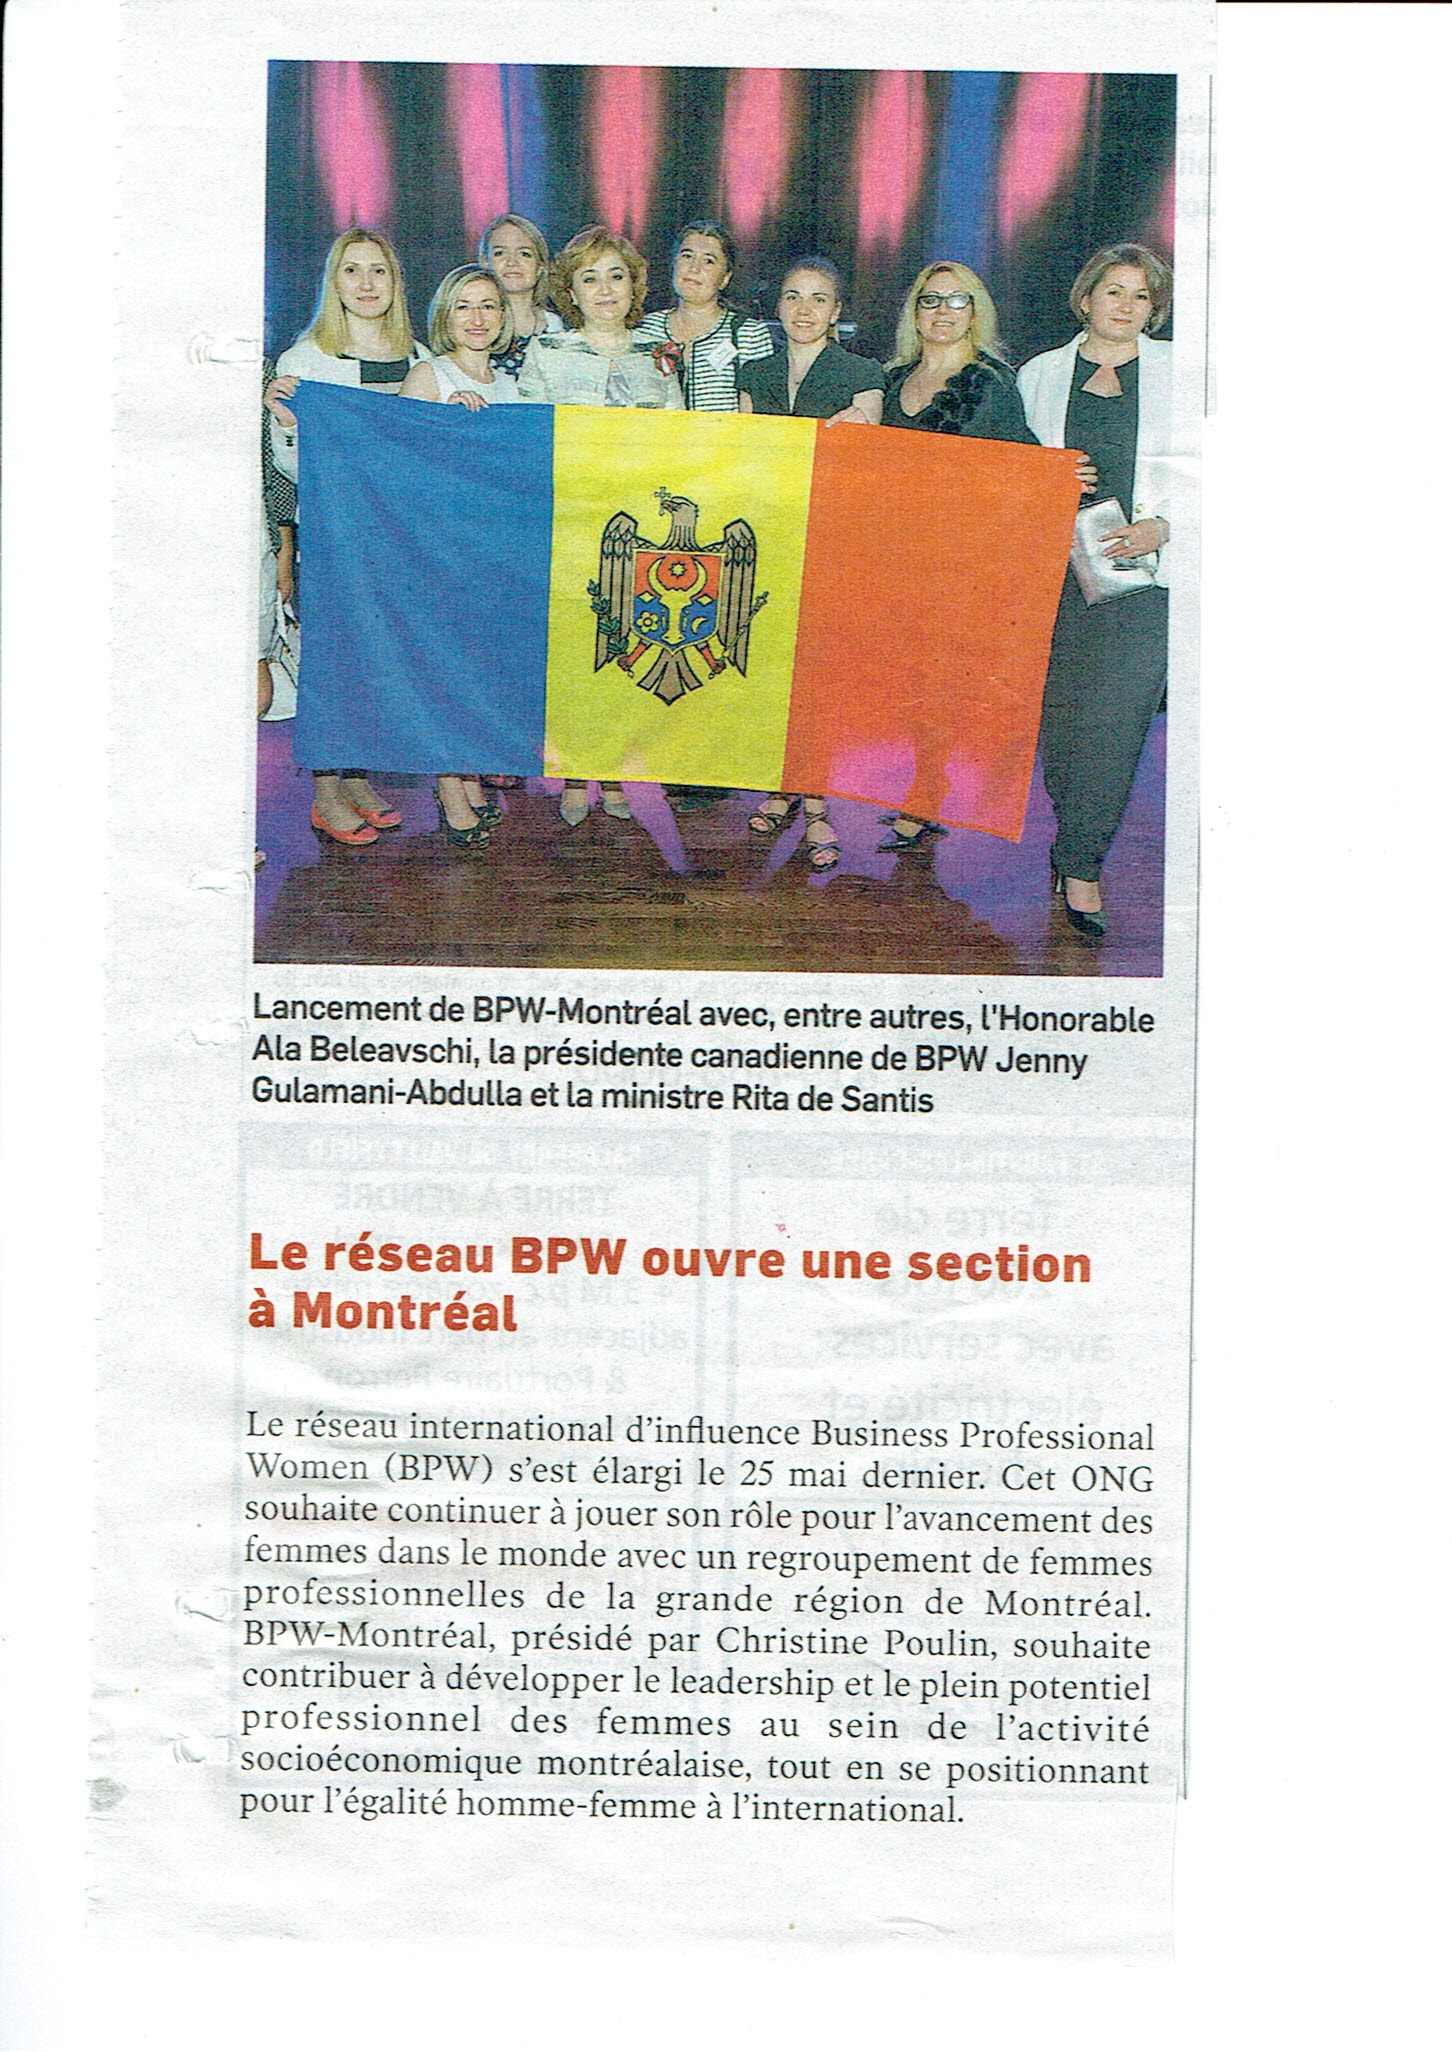 BPW Montreal Article journaldesaffaires20170617 page 0